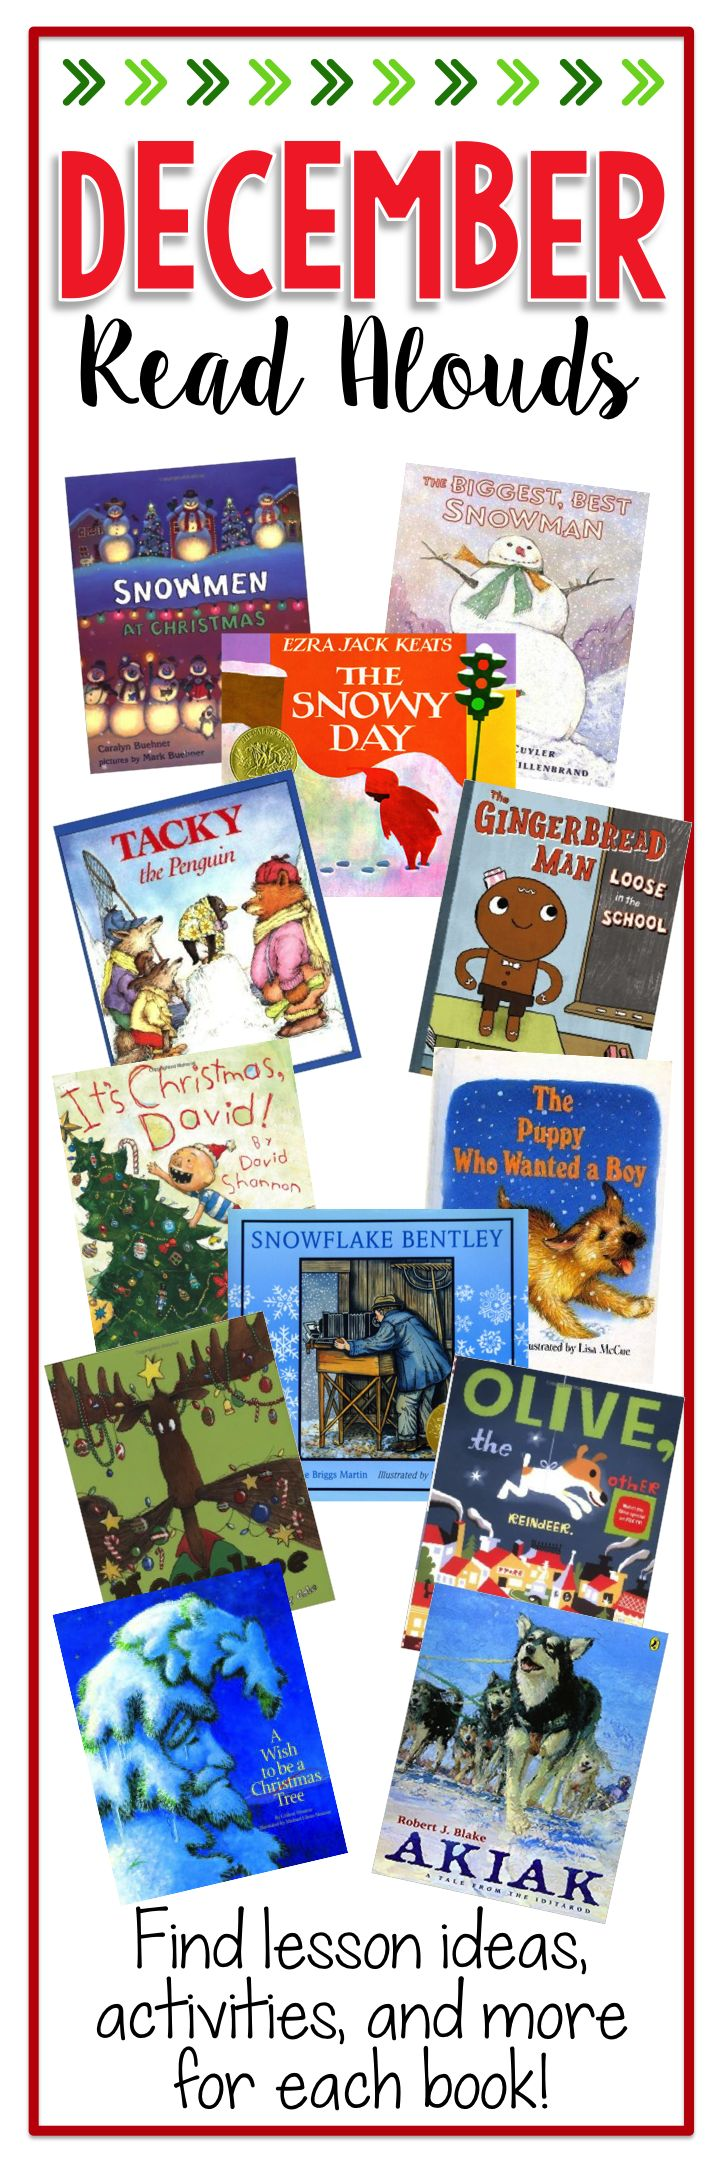 December Read Alouds - Lesson ideas, crafts, and freebies for 12 great read alouds to use in December!